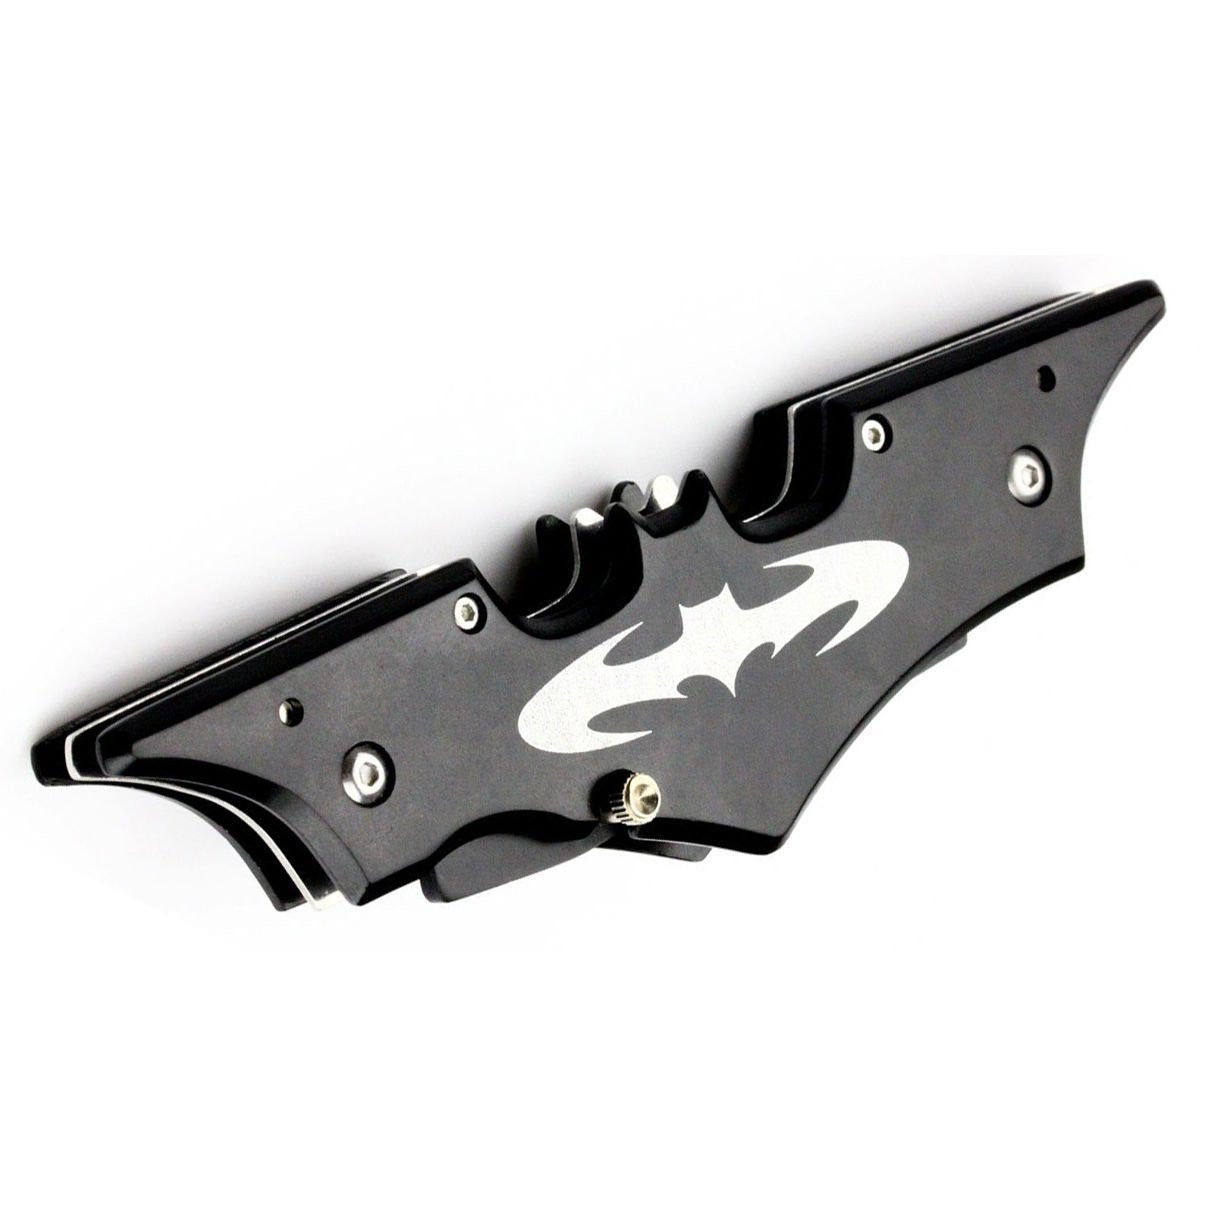 Batman Dual Blade Knife - OddGifts.com